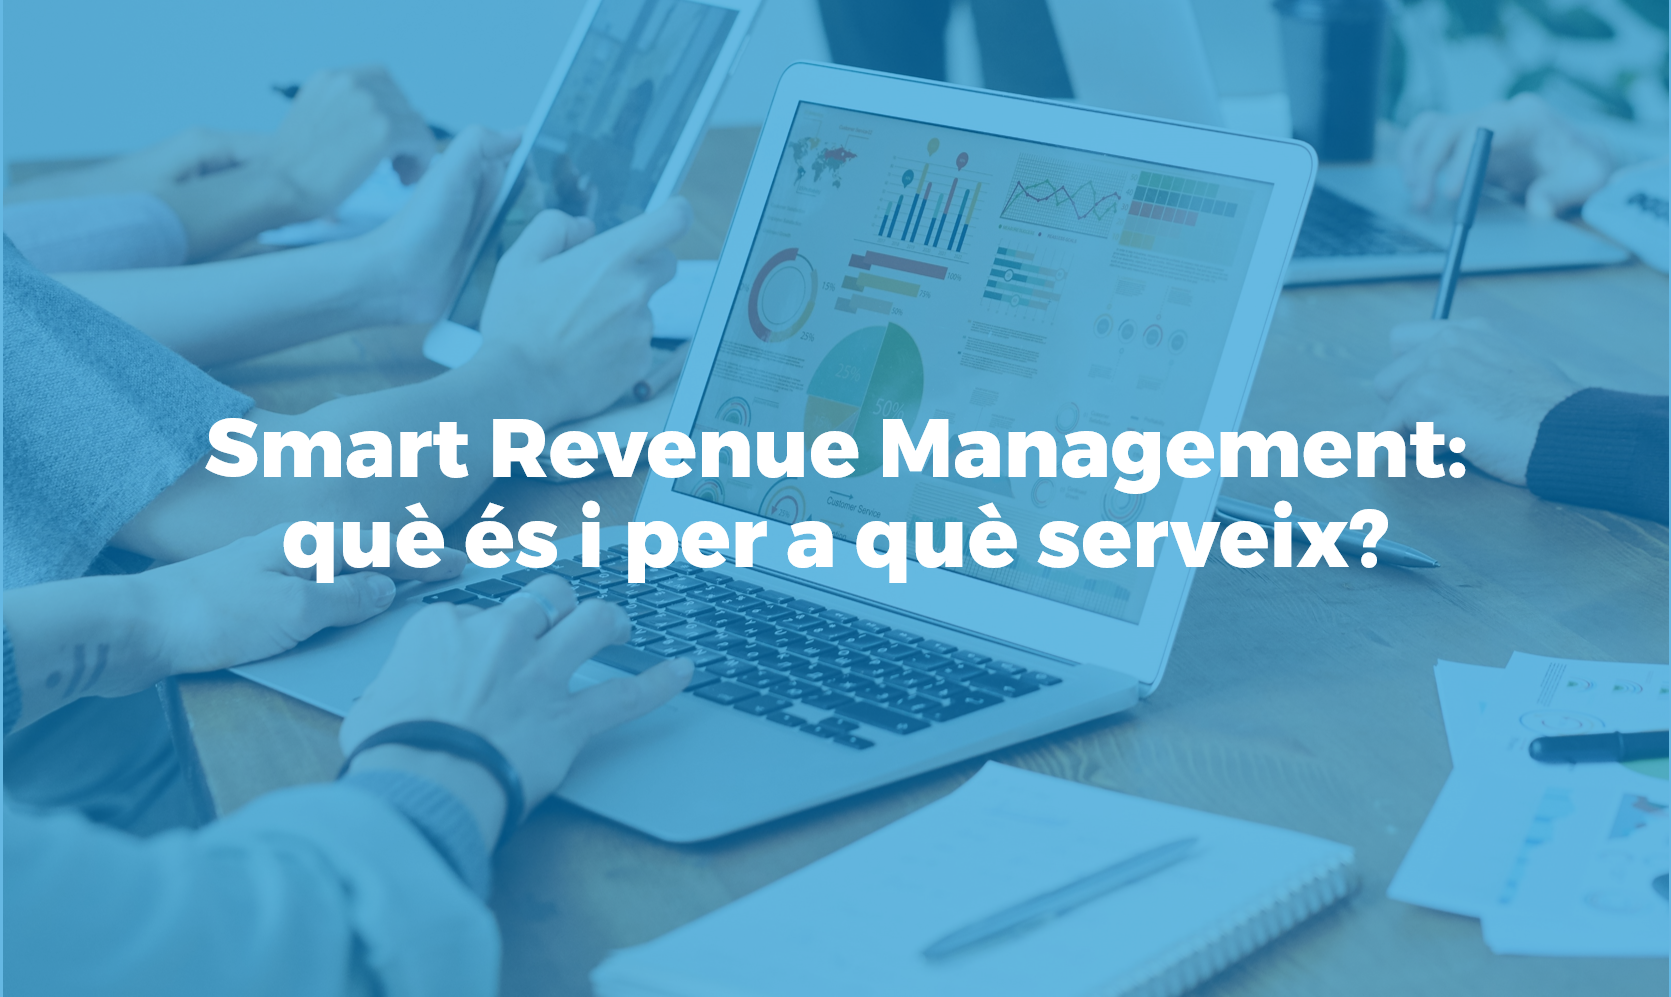 Revenue management que es i per a que serveix